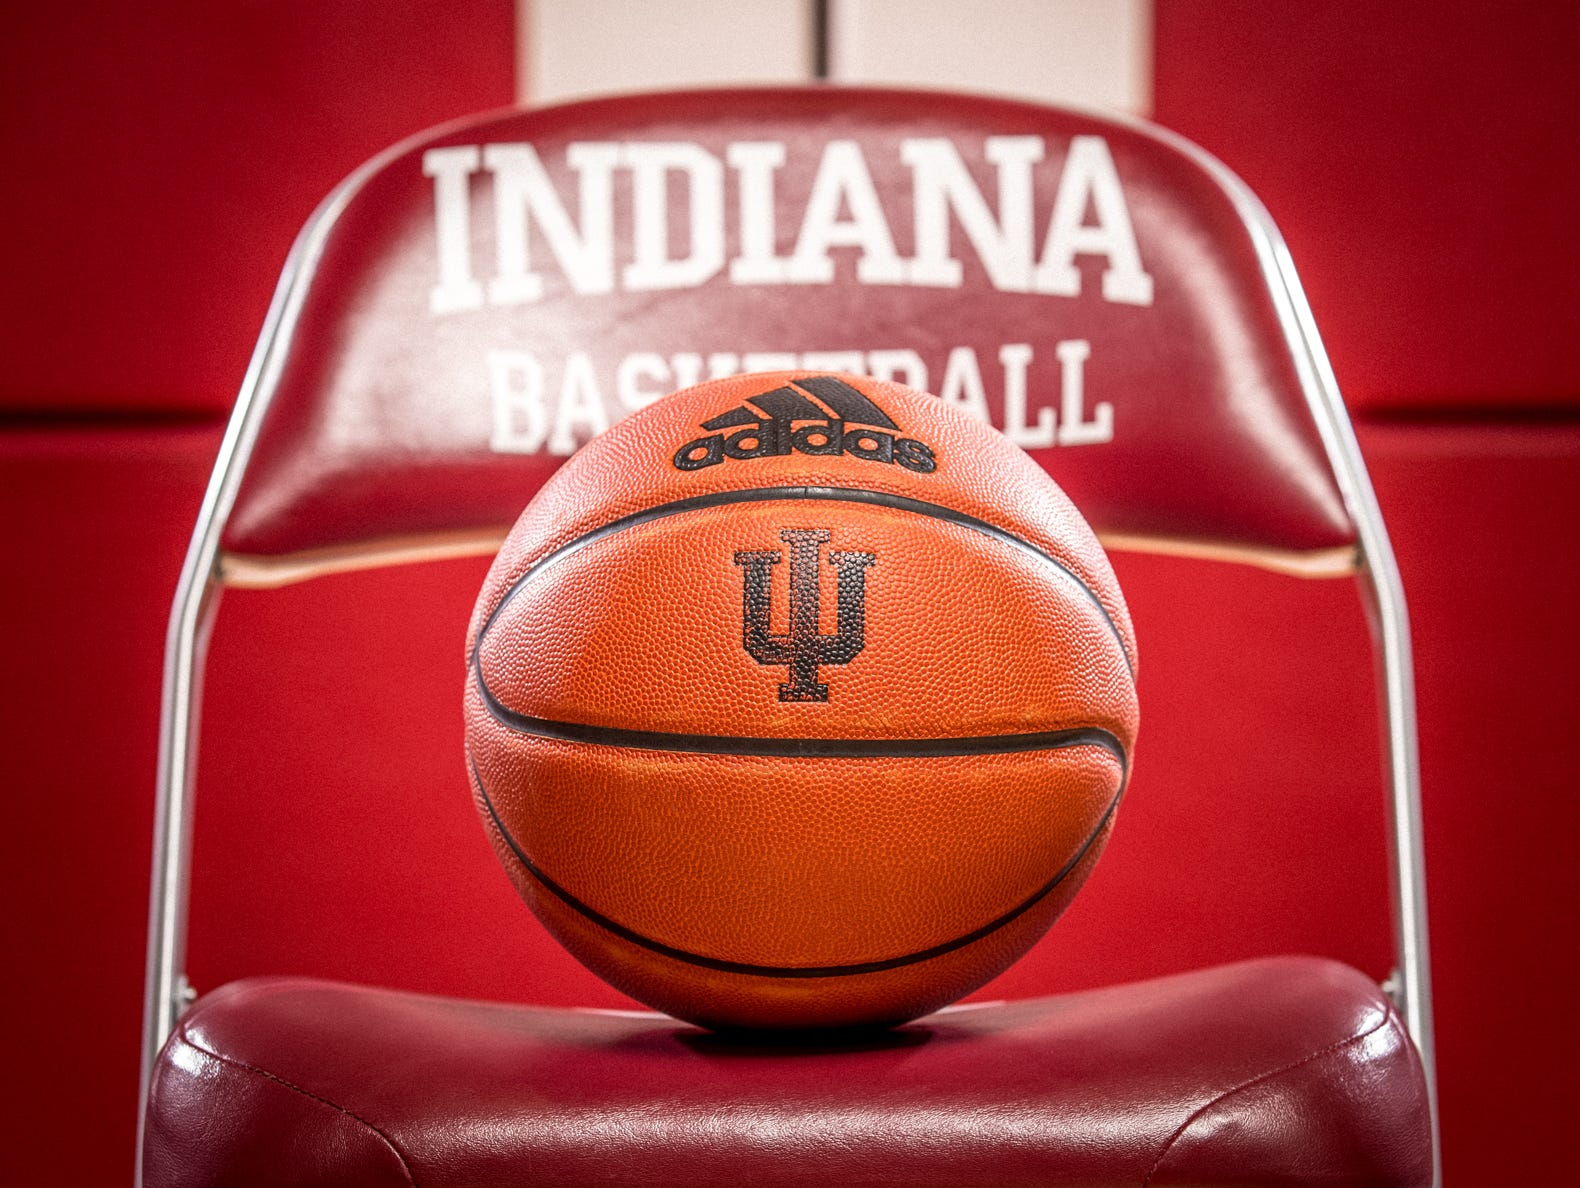 IU photo illustration during Indiana University Media Day at Simon Skjodt Assembly Hall on Wednesday, Sept. 26, 2018.